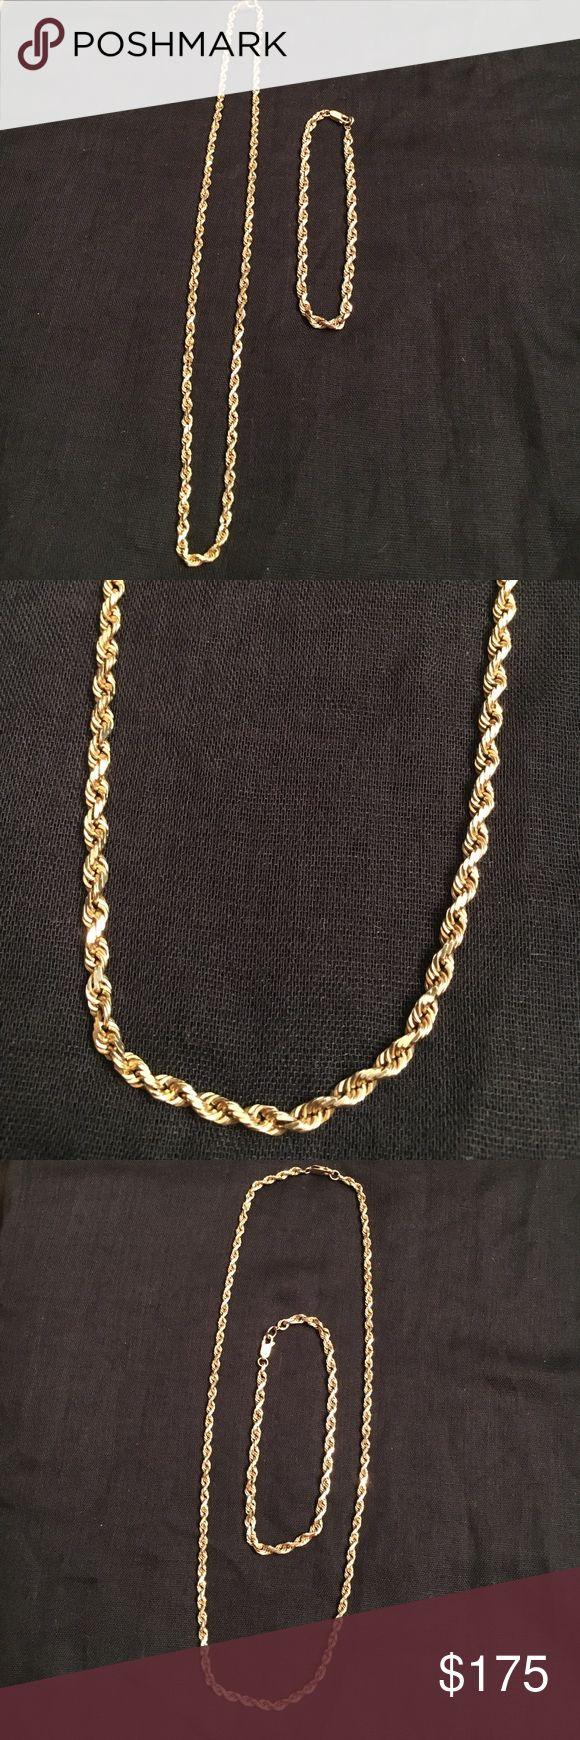 Unisex 14k yellow gold rope chain and bracelet Stunning unisex 14k yellow gold rope chain necklace and bracelet!!  Lengths are 9 and 20 in.  Both pieces are in very good condition with no imperfections.  Both are heirloom pieces, perfect for ladies or gents, dads or grads. Jewelry Necklaces